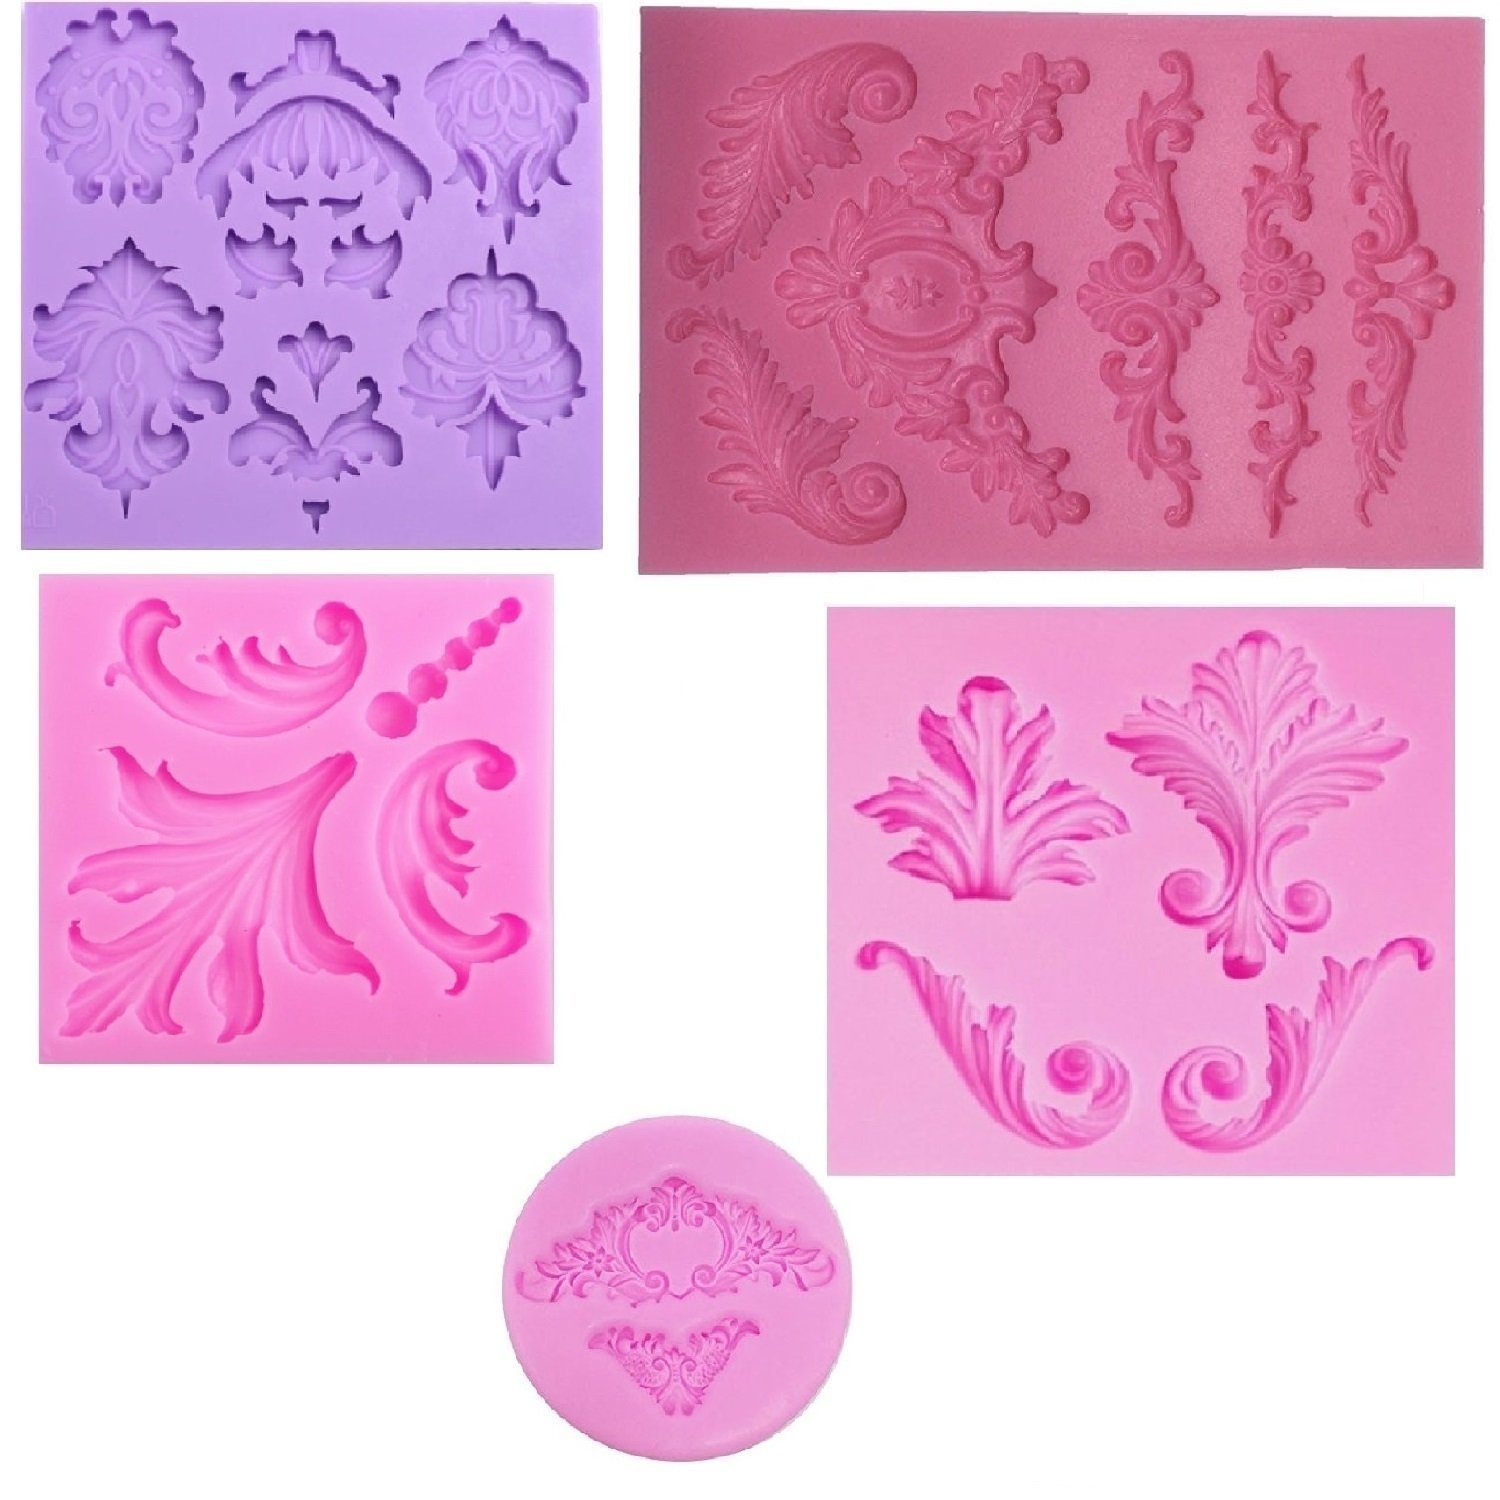 PalkSky Baroque Style Curlicues Scroll Lace Fondant Silicone Mold for Sugarcraft, Cake Border Decoration, Cupcake Topper, Jewelry, Polymer Clay, Crafting Projects, 5 in Set 4336842623